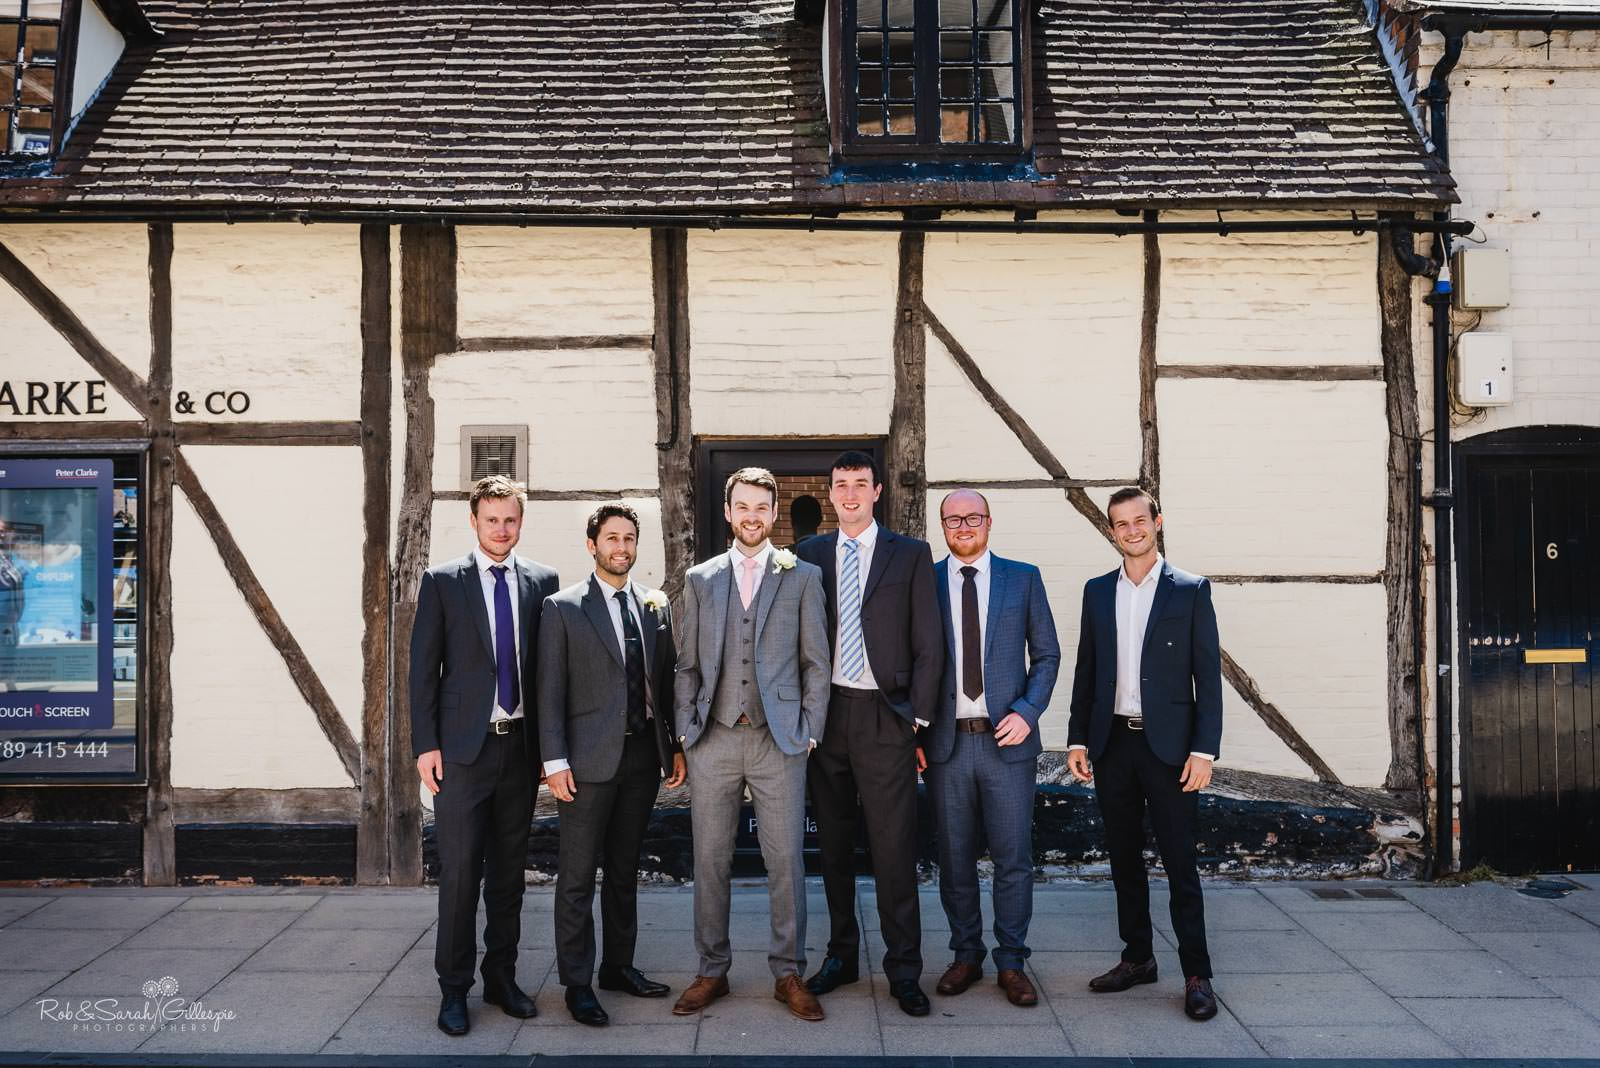 Groom and friends in Stratford upon Avon